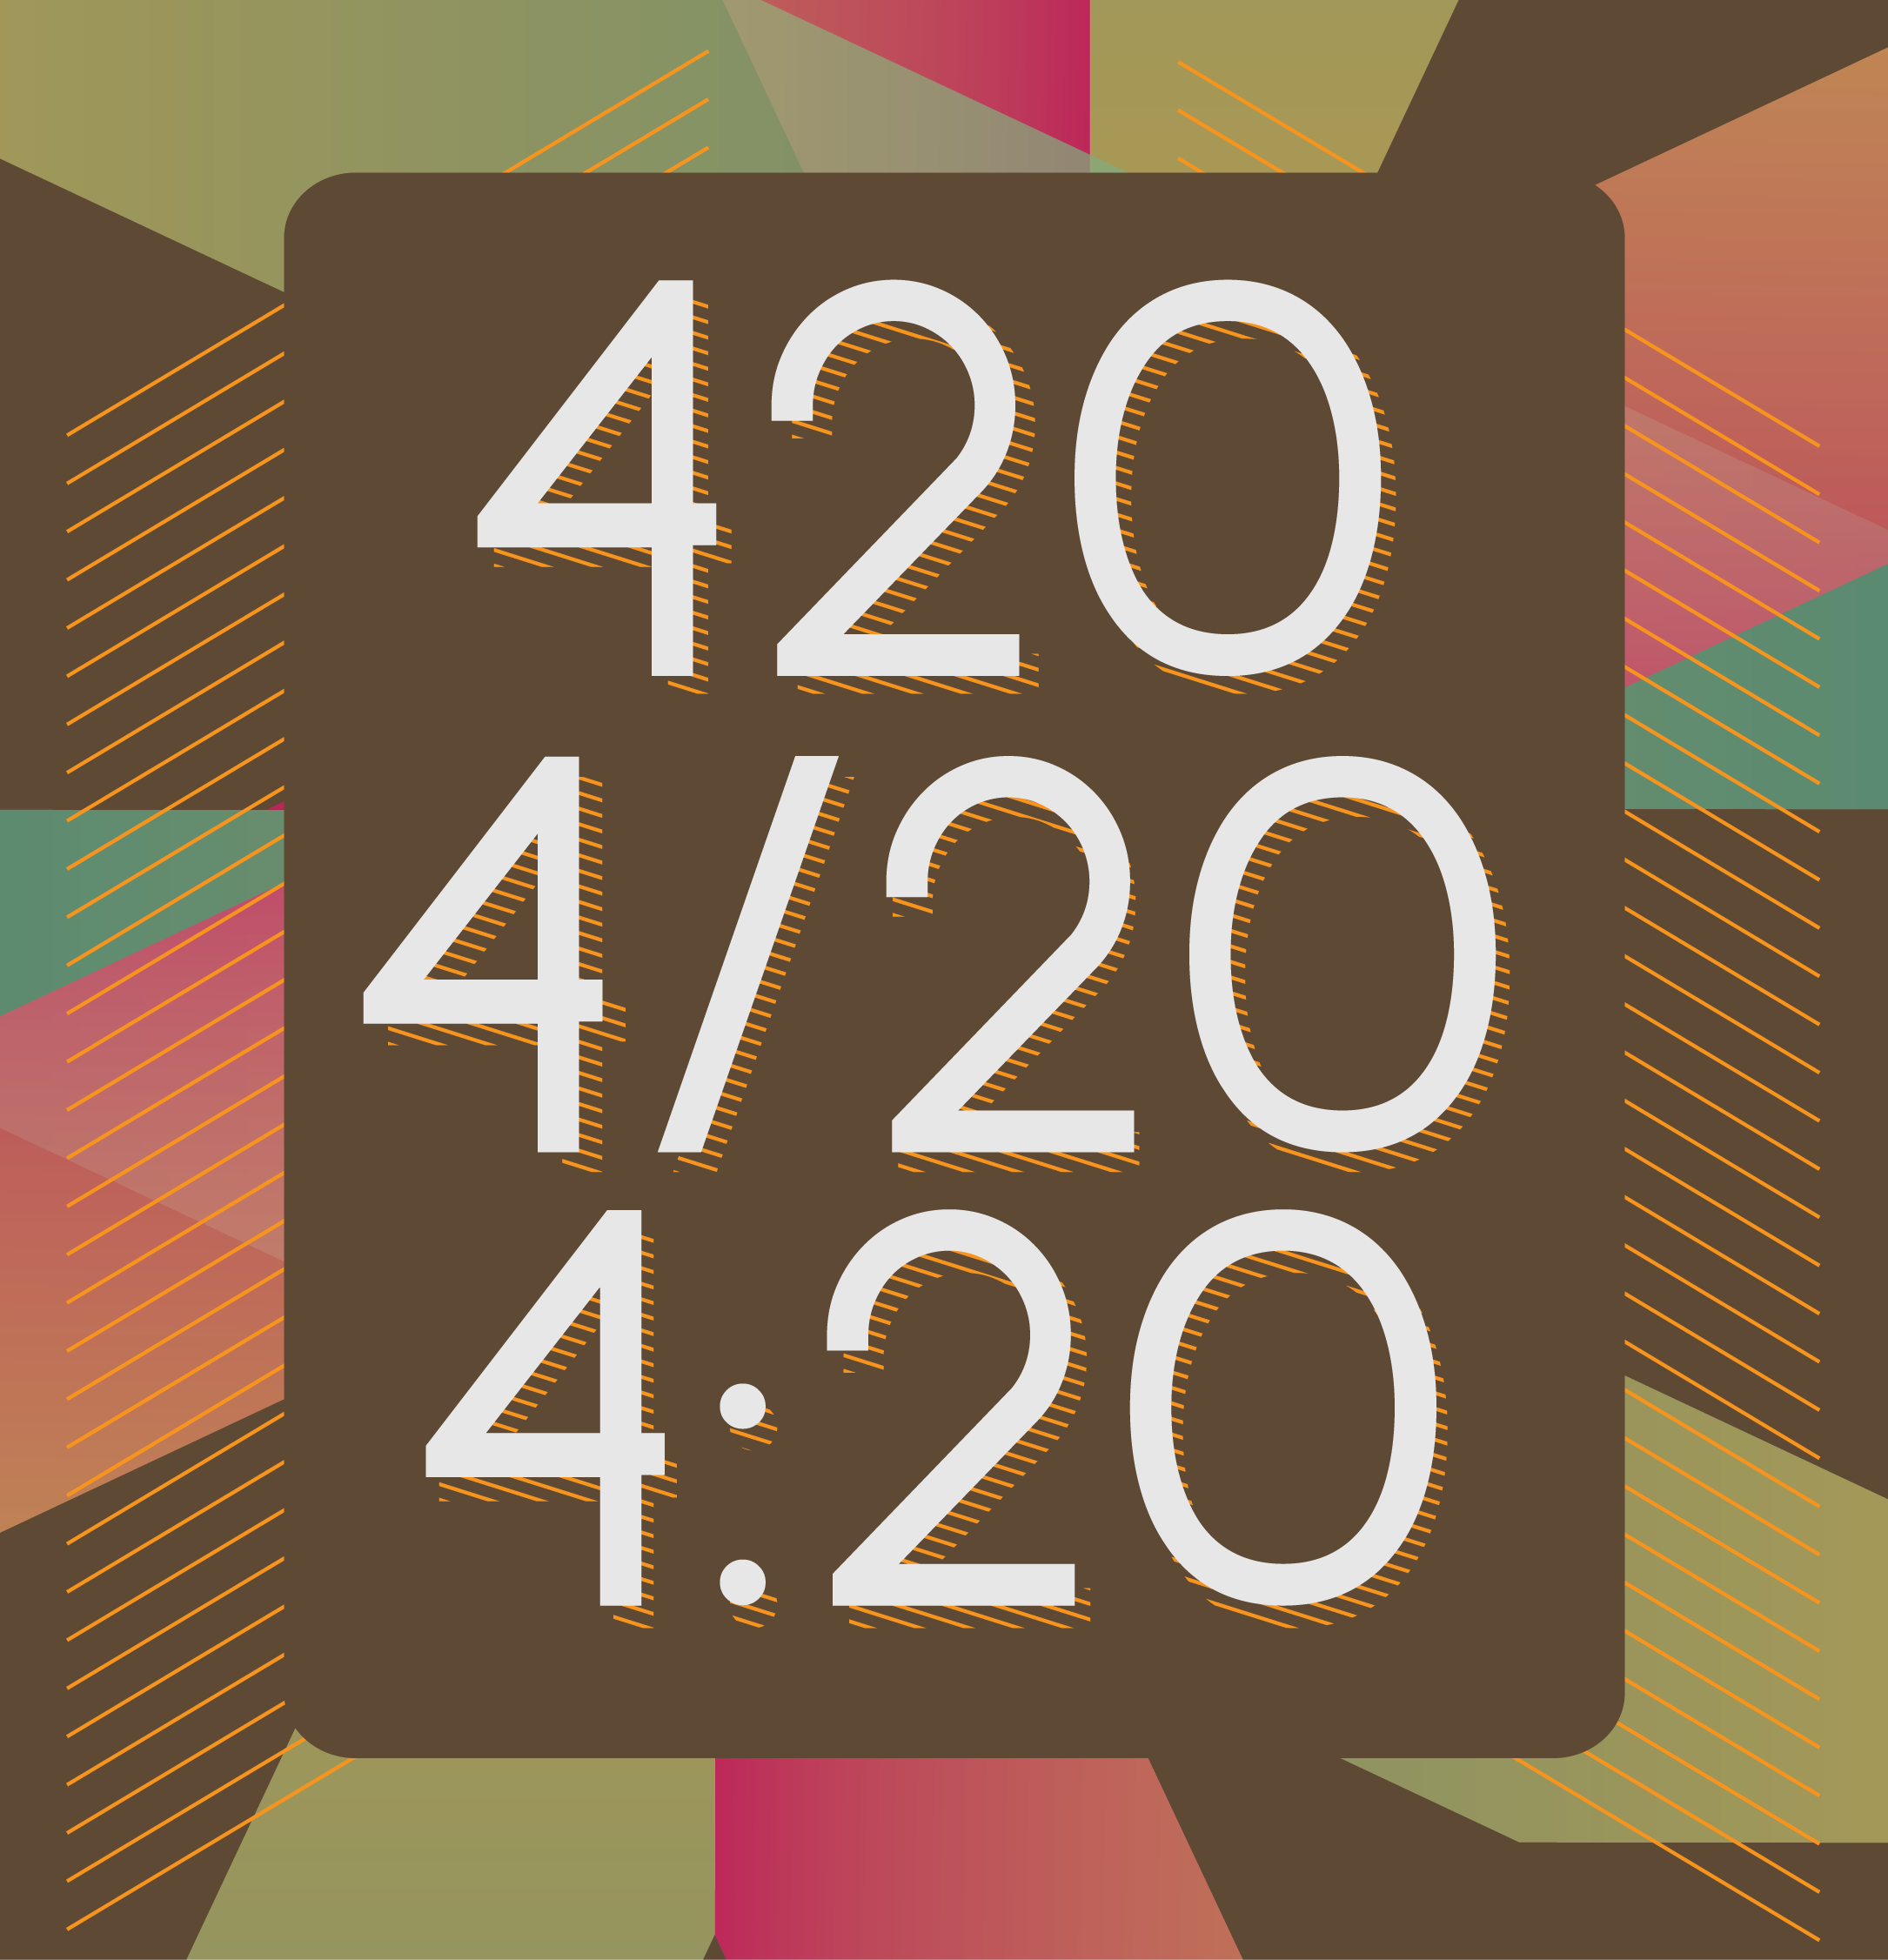 420 on 4/20 by 4:20 – Preparing the Soil – Part 2